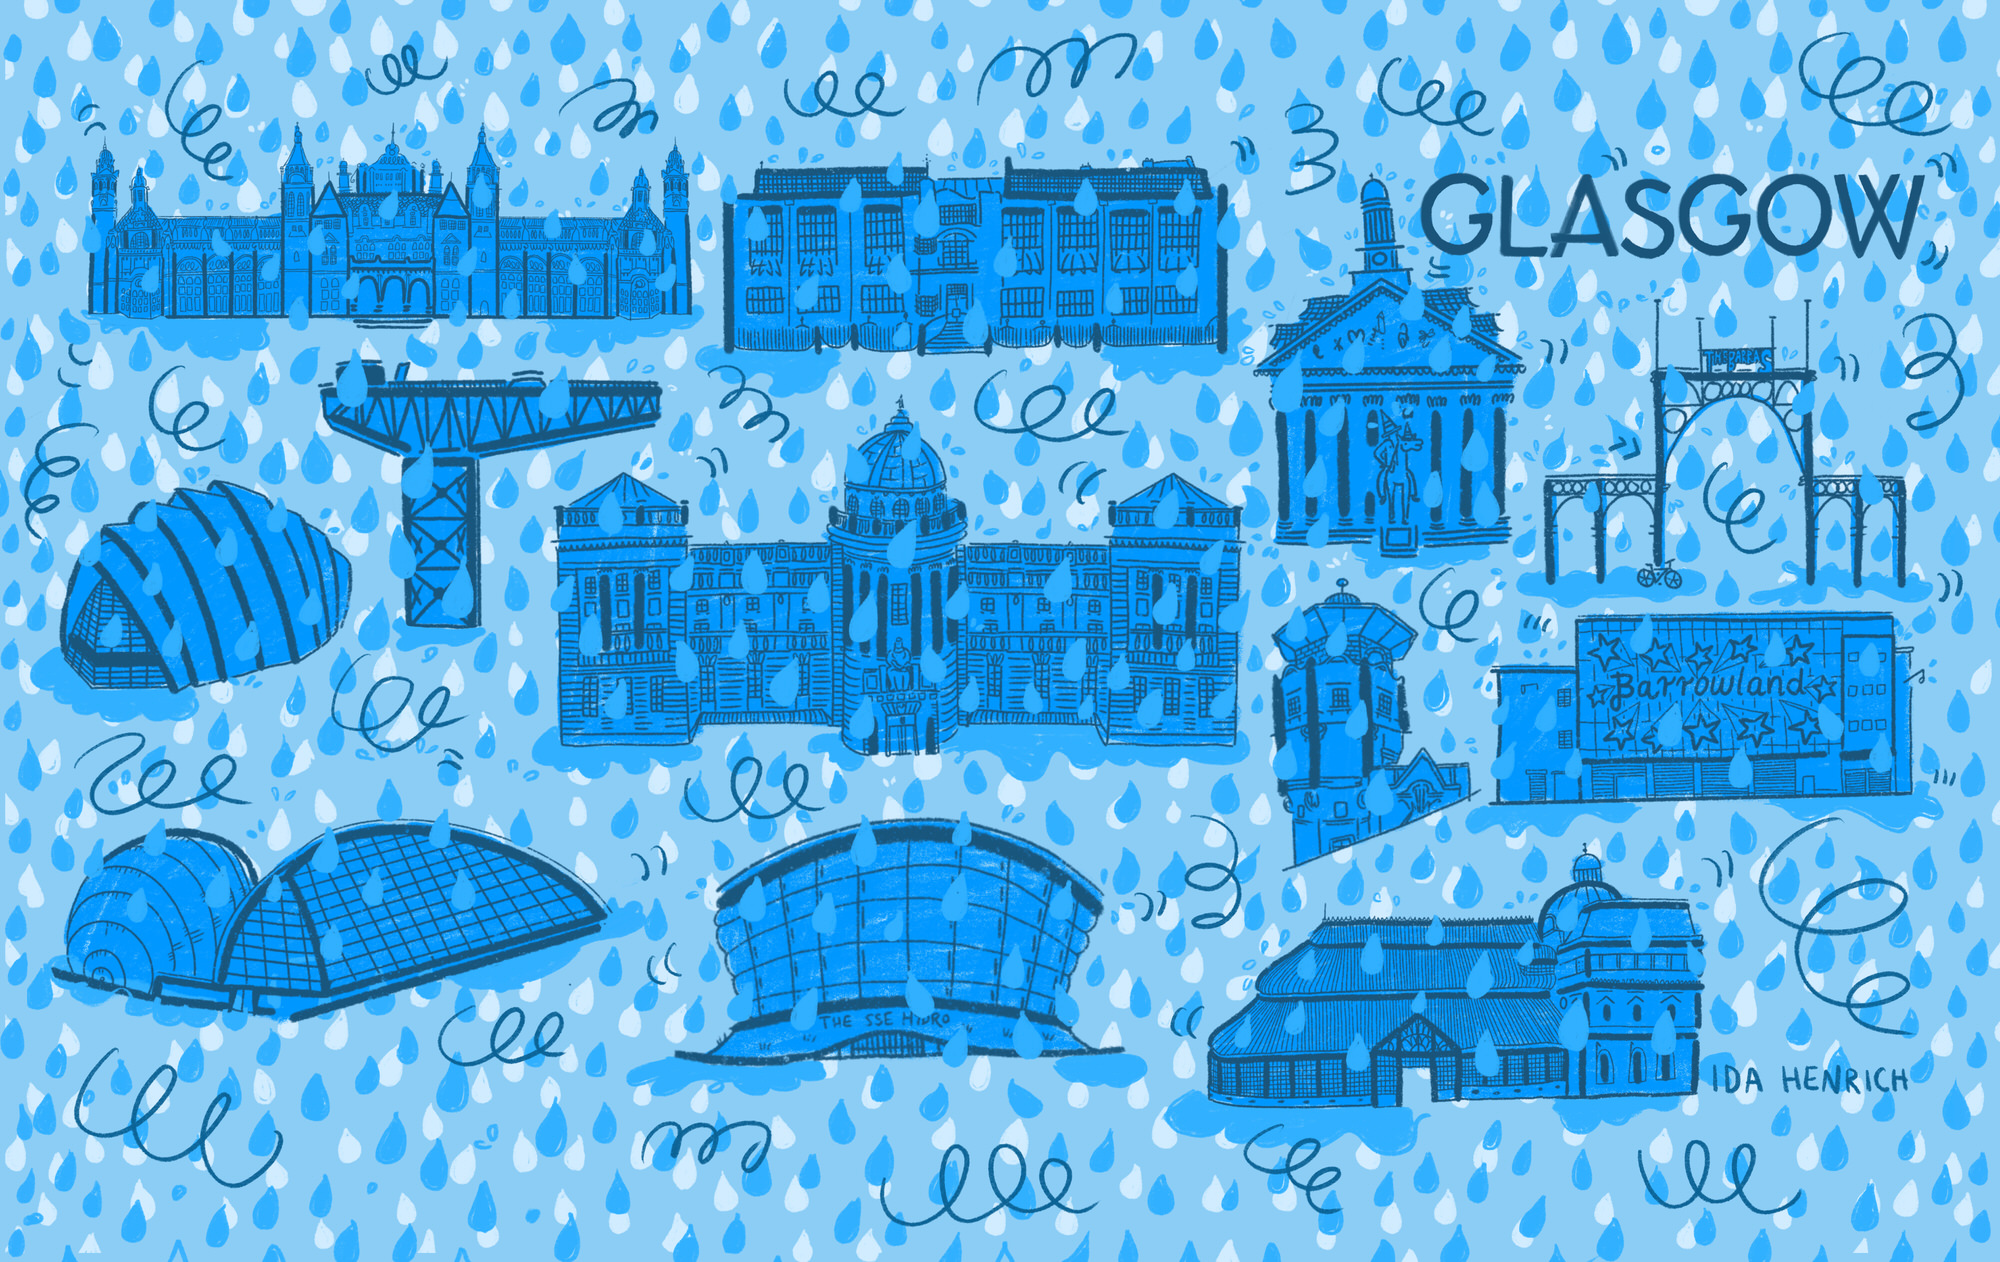 The image shows Glasgow tourist attractions in the rain. The attractions include: GoMA, Finnieston Crane, SSE Hydro, SEC Armadillo, The Glasgow School of Art Mackintosh building, Barrowland Ballroom, Peoples Palace, the Mitchell Library, The Glasgow Lighthouse, The Science Museum and the Kelvingrove Art gallery. Image by Ida Henrich